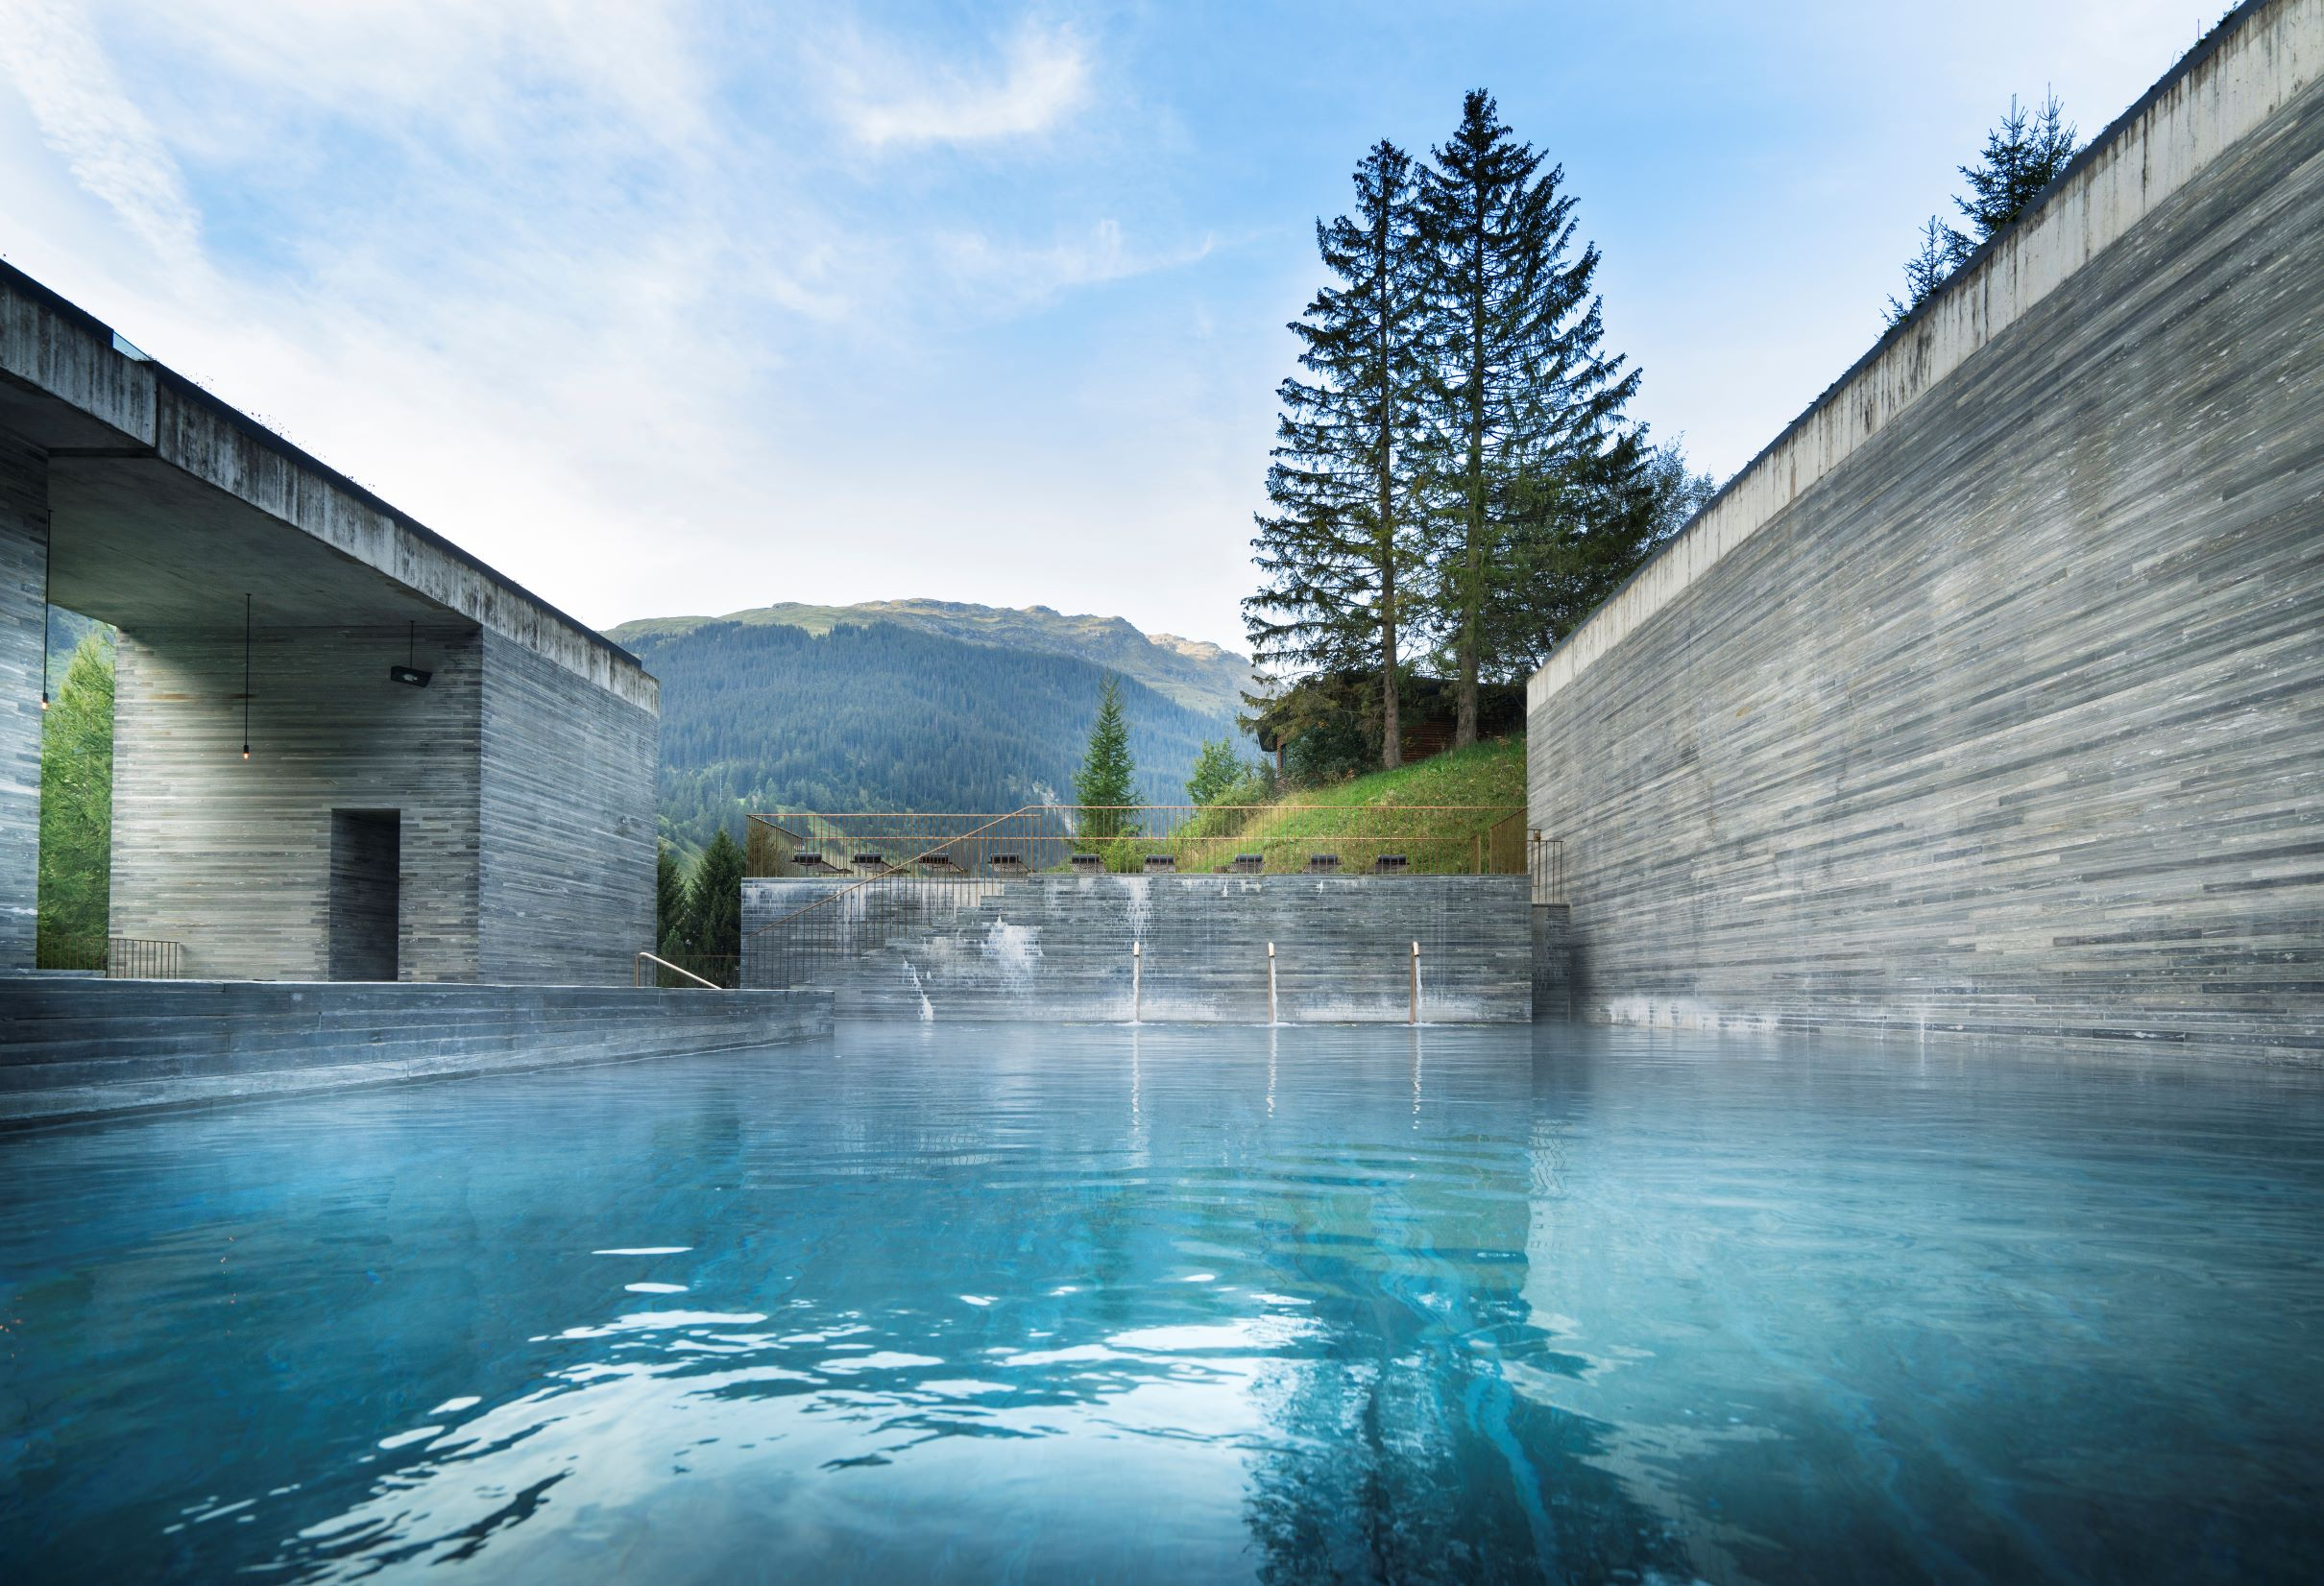 7132 Thermal Baths (formerly Therme Vals), 7132 Hotel, Vals, Switzerland